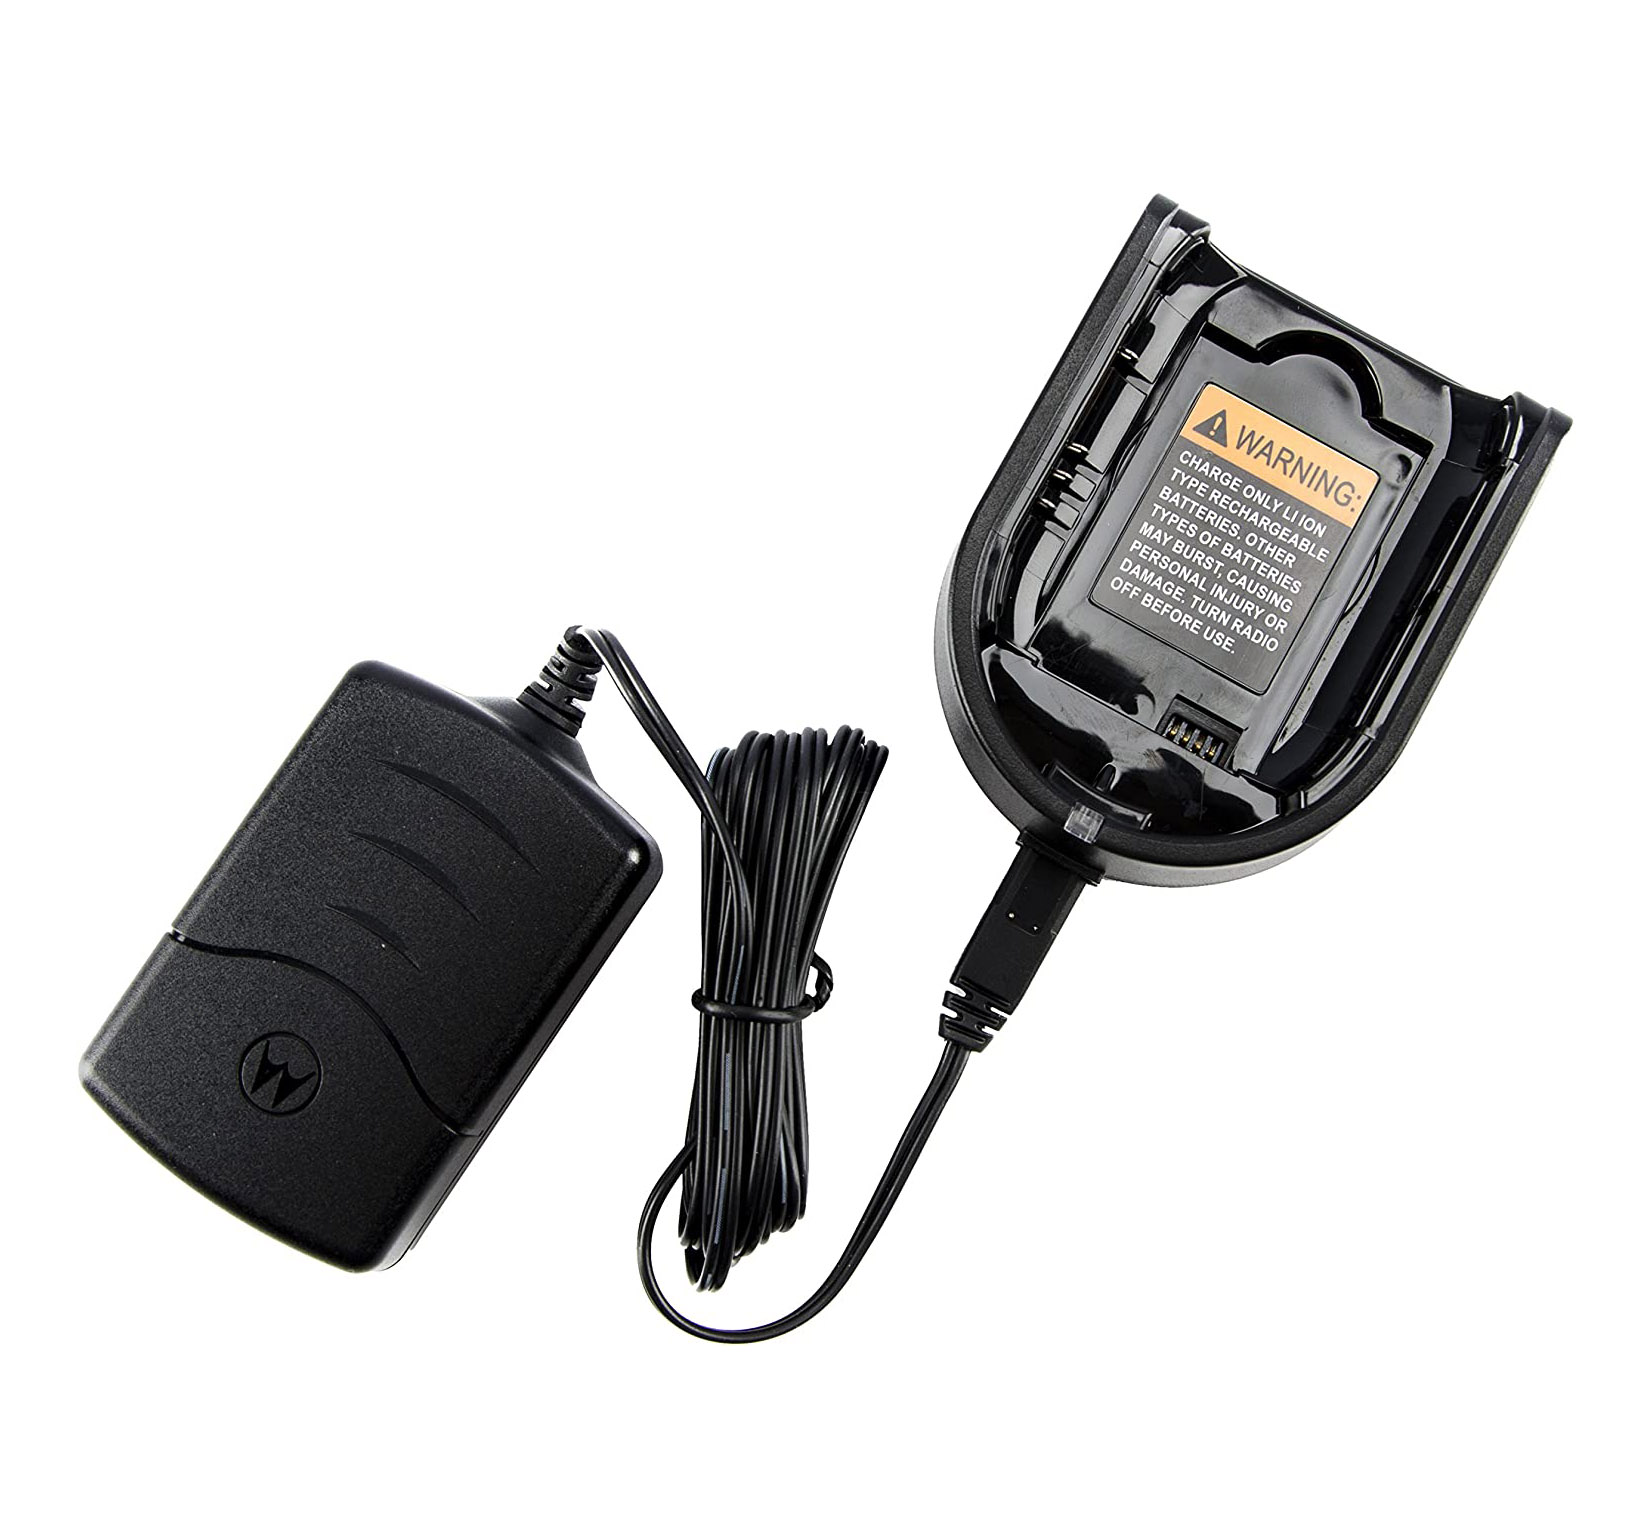 motorola HKPN4008A CLP Single Unit Charger Kit